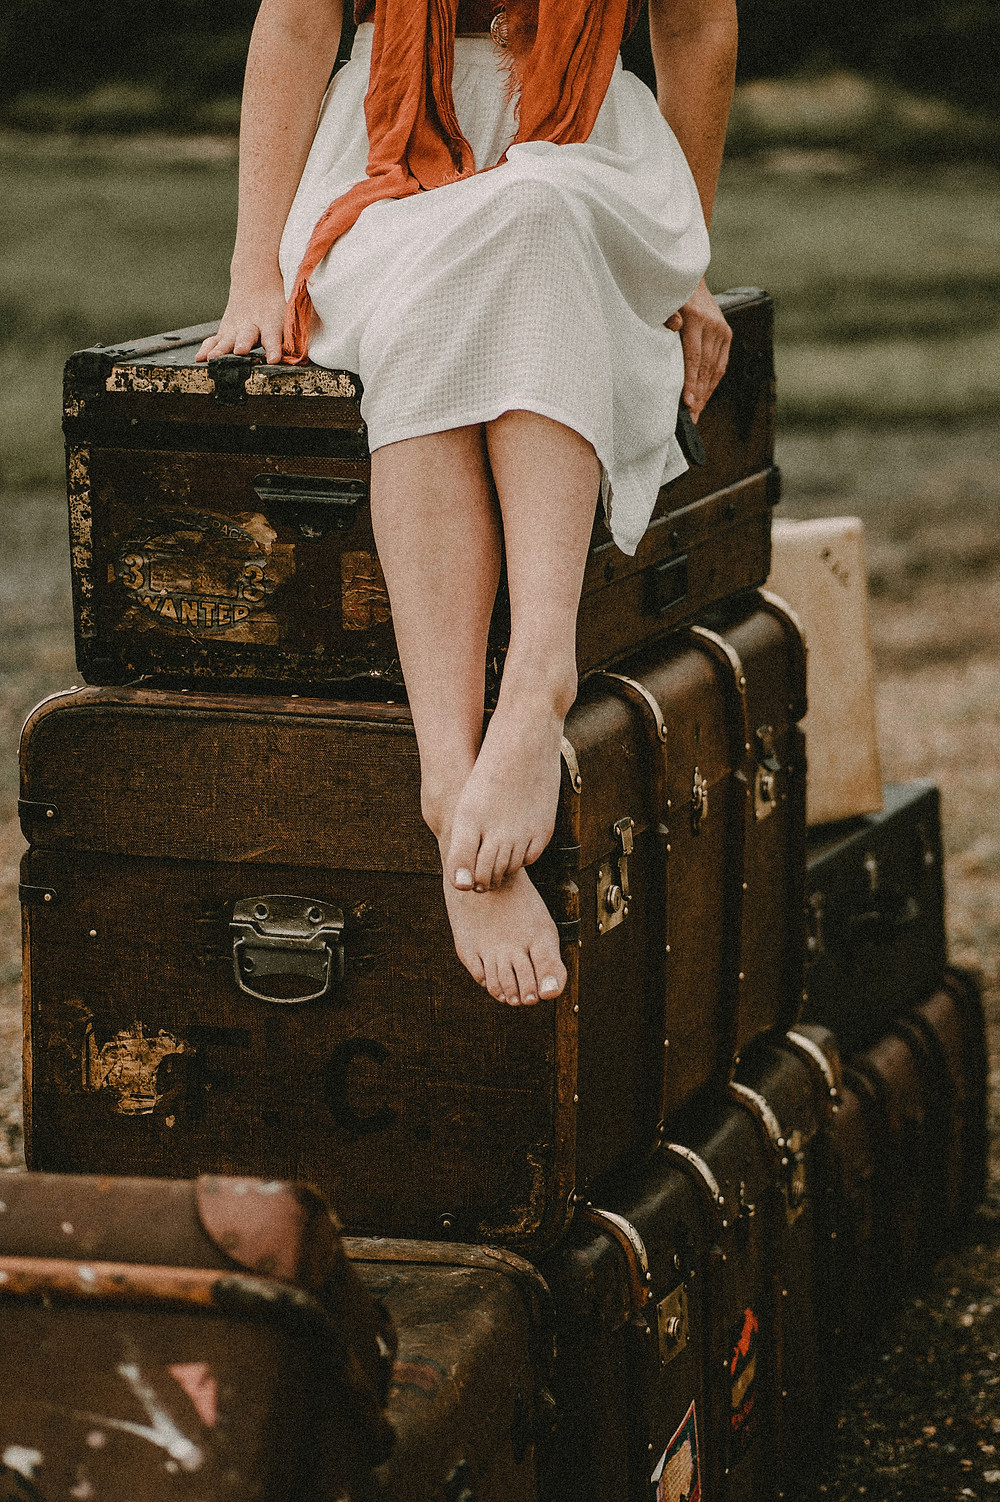 Woman sitting on top of vintage suitcases